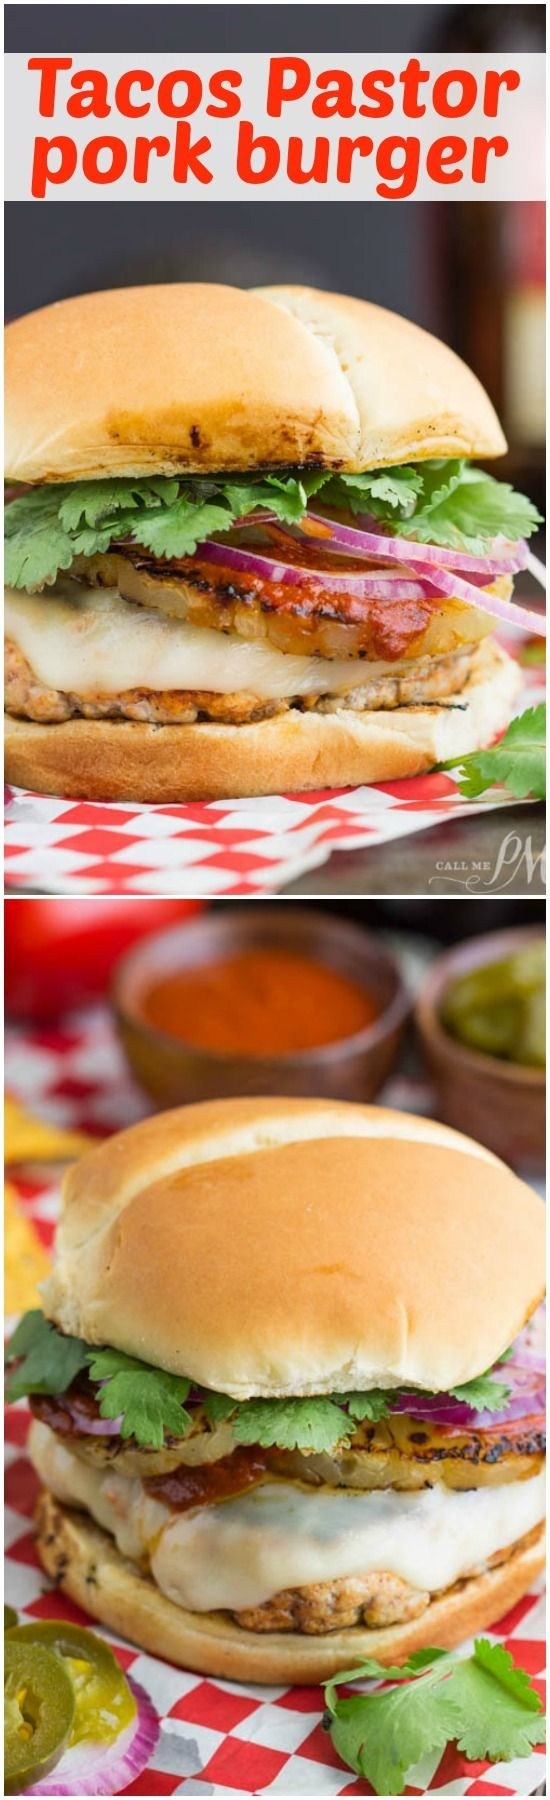 My Tacos Pastor Pork Burger has the same flavors and spices as this the popular Mexican street food Tacos el Pastor. Enter giveaway on site! http://www.callmepmc.com/tacos-pastor-pork-burger/